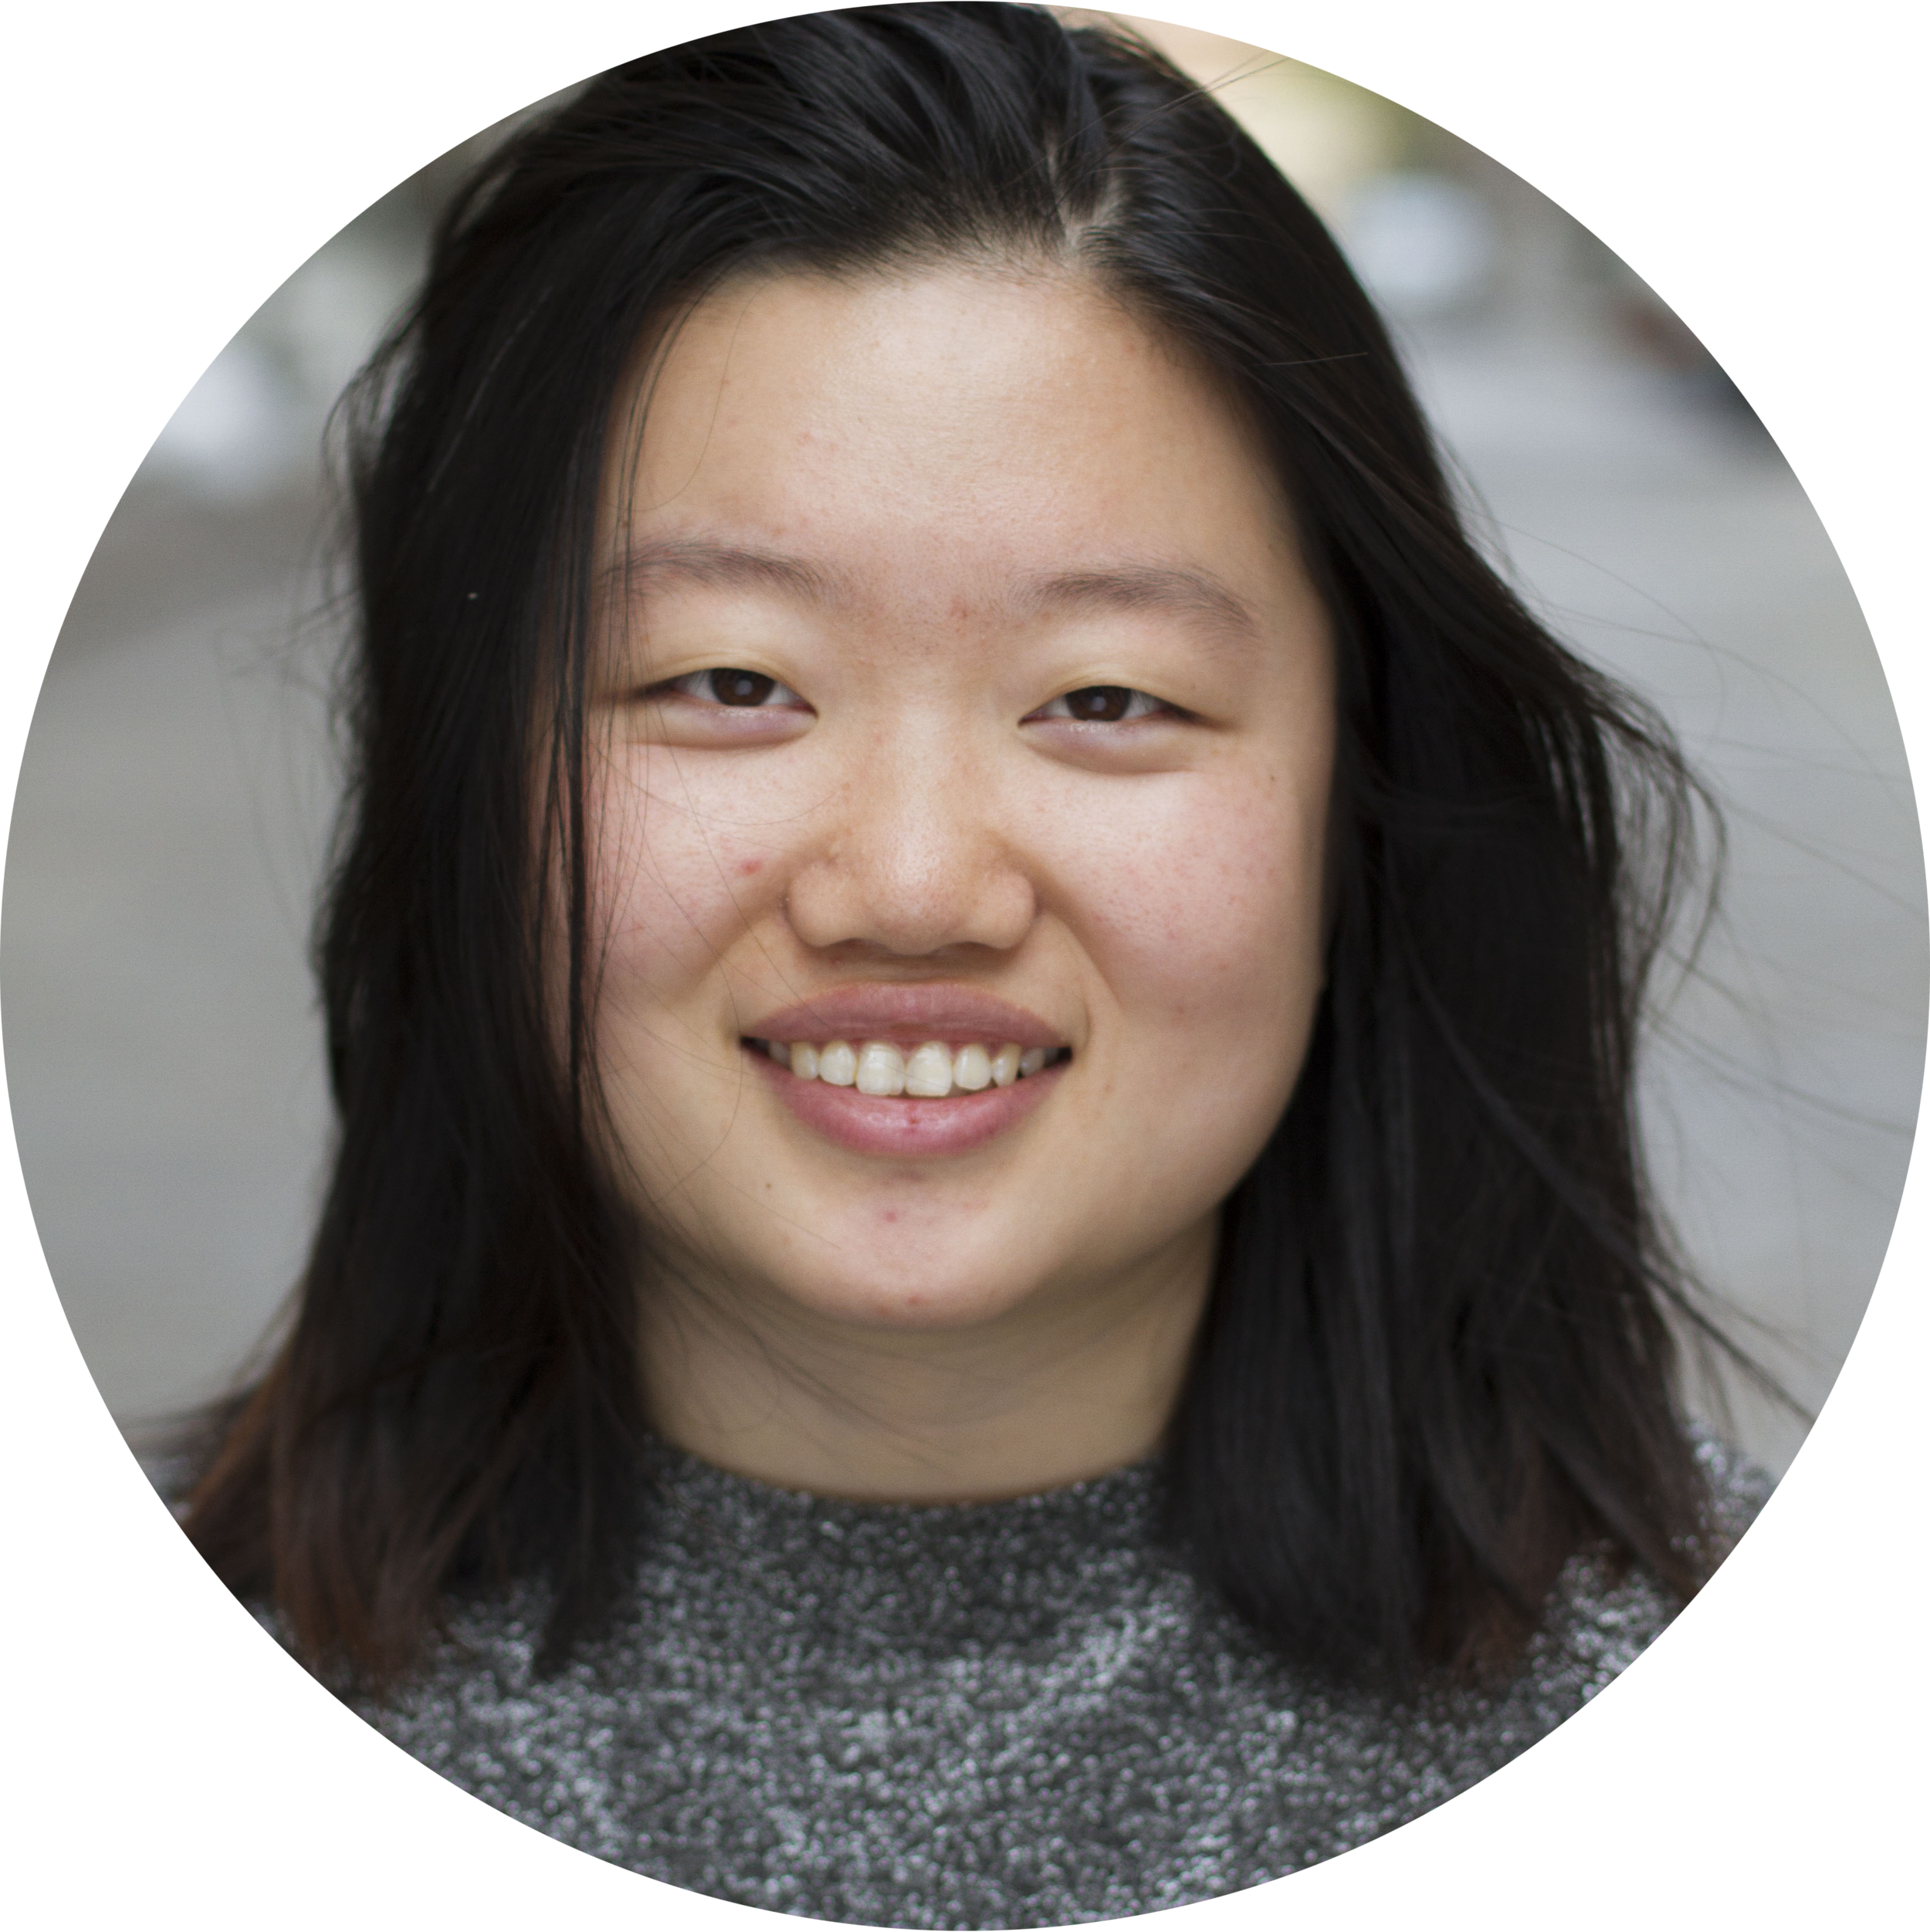 Olia Zhang  Curriculum Team - Teaching/Advising Design Lead  Olia is a student at NYU Gallatin. She went through Chinese public education before she was 17 and aspired to be a war correspondent with an underground band. After studying in almost all schools across NYU, she now concentrates in education, social change, human development, and narratives through philosophical and anthropological lenses.